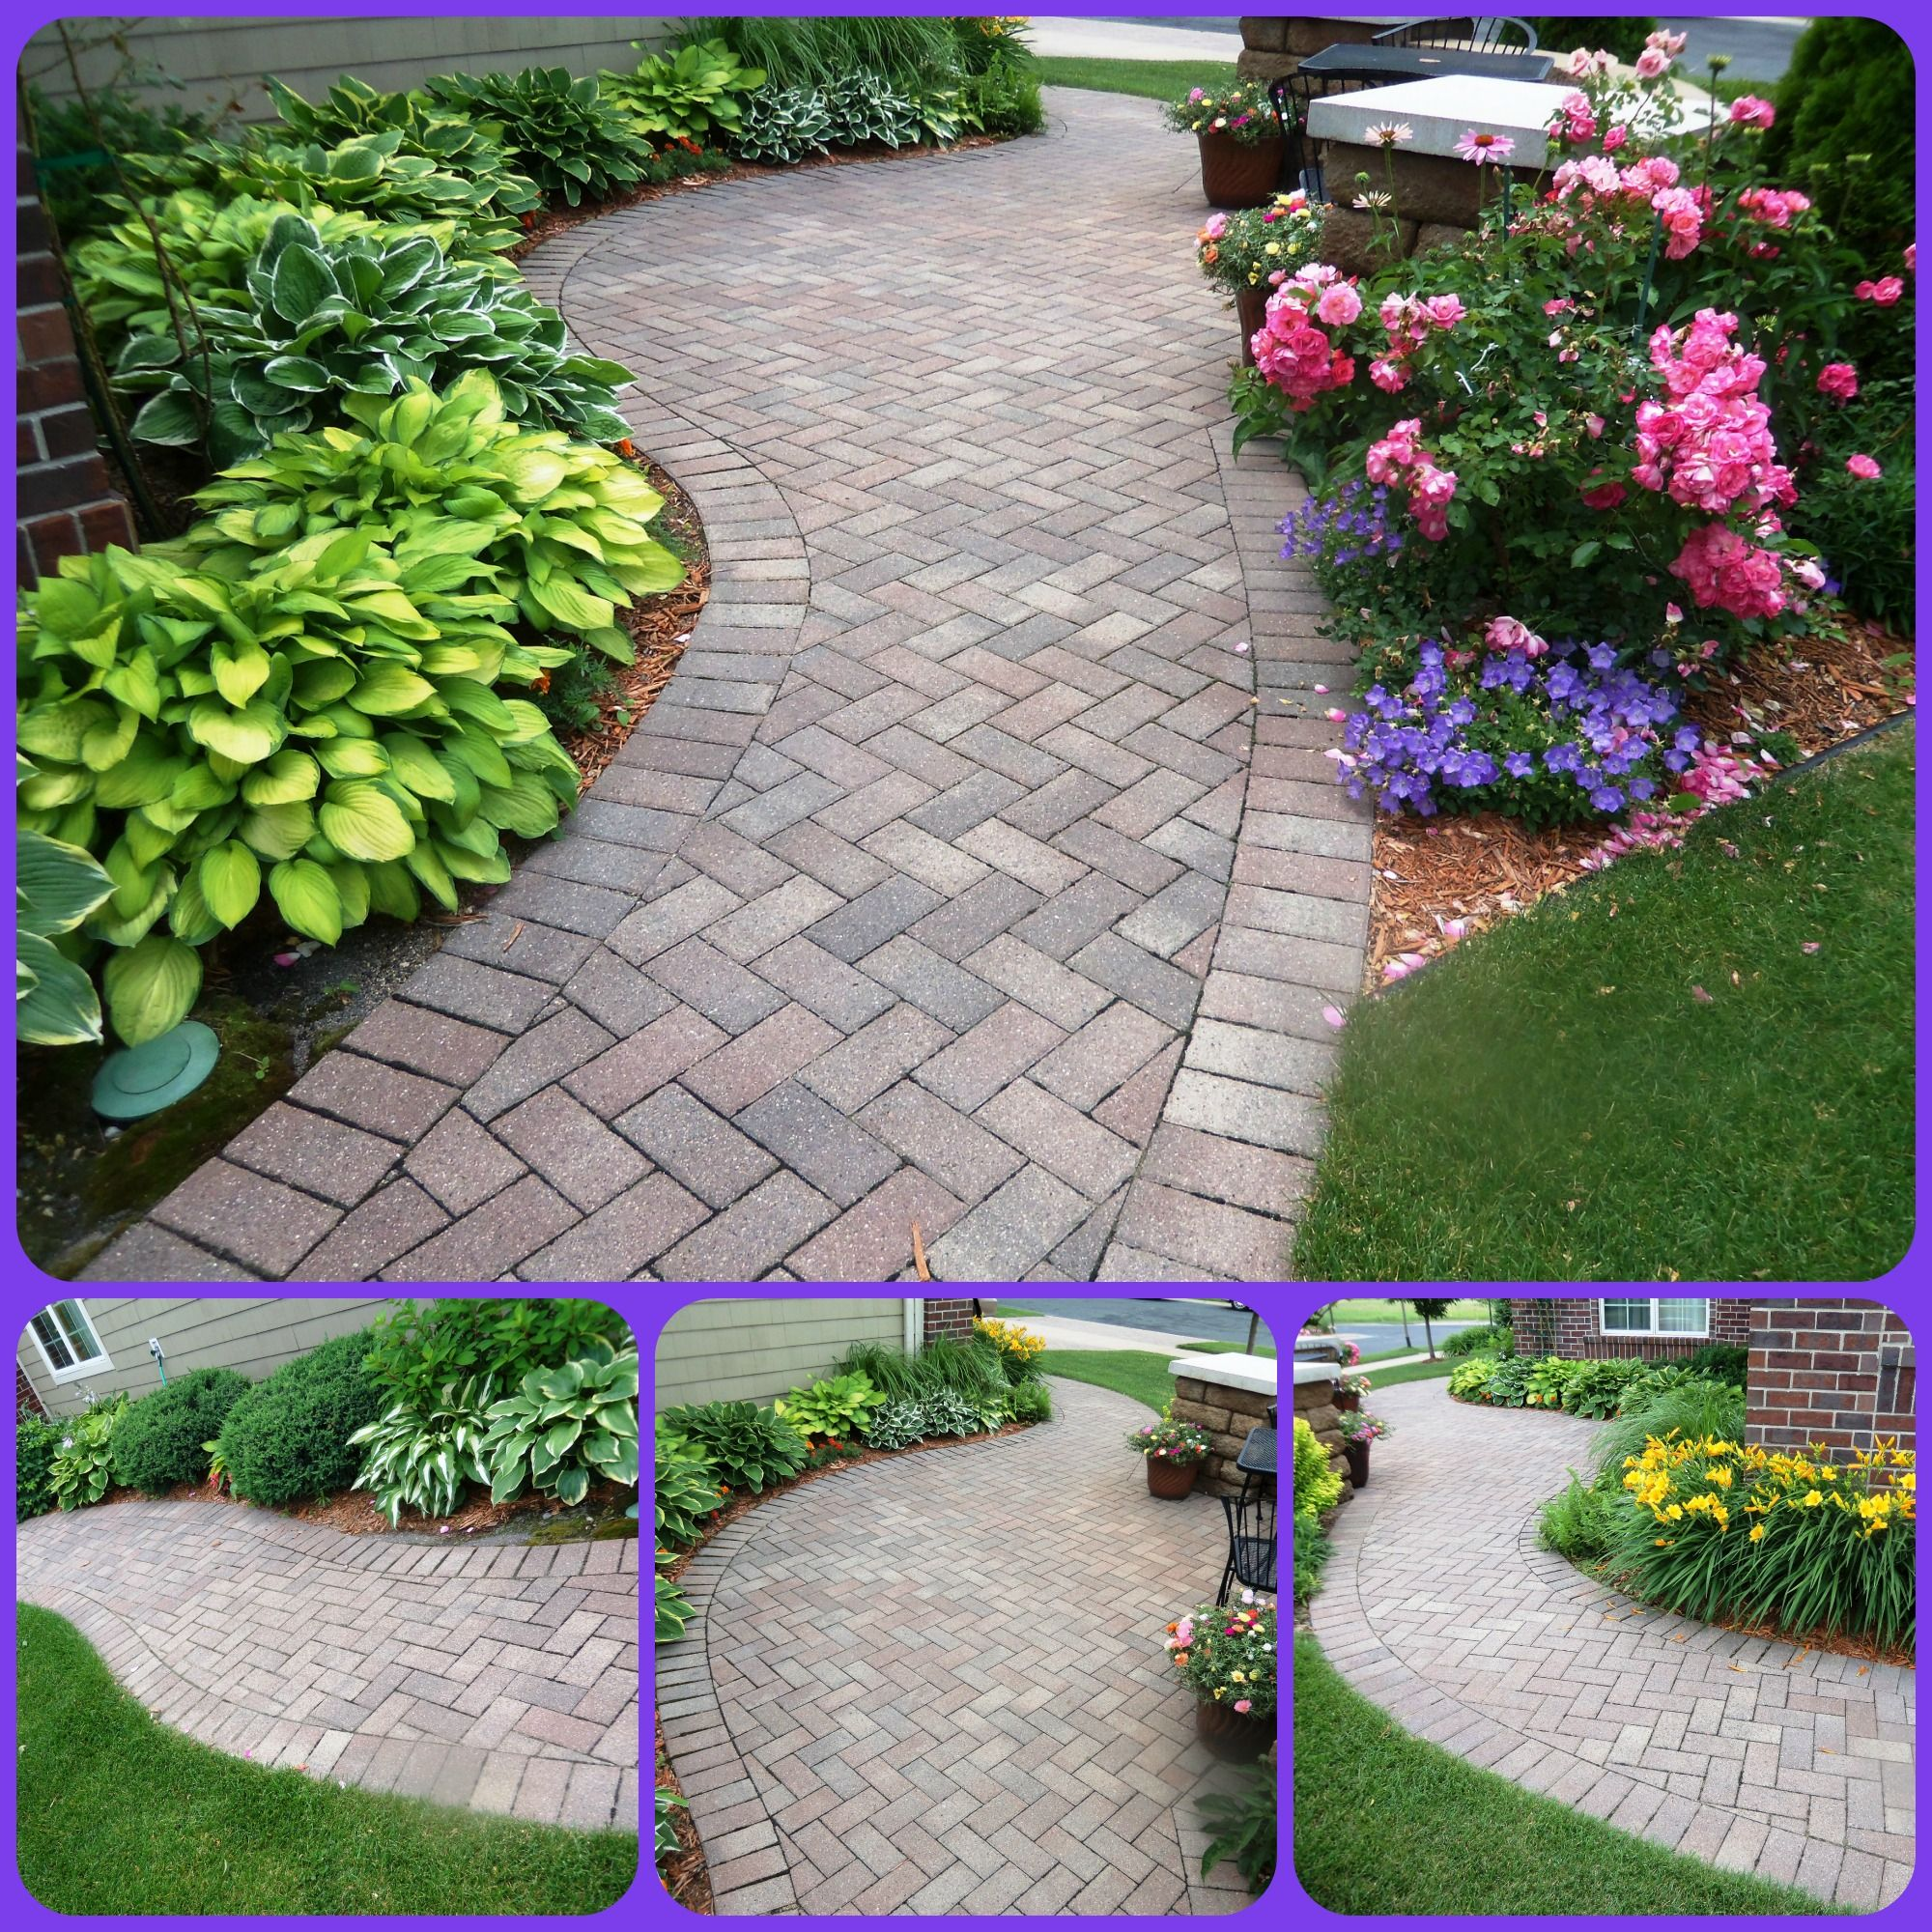 Covered Walkway Designs For Homes: Stunning Paver Walkway Wrapping Around The Side Of Home